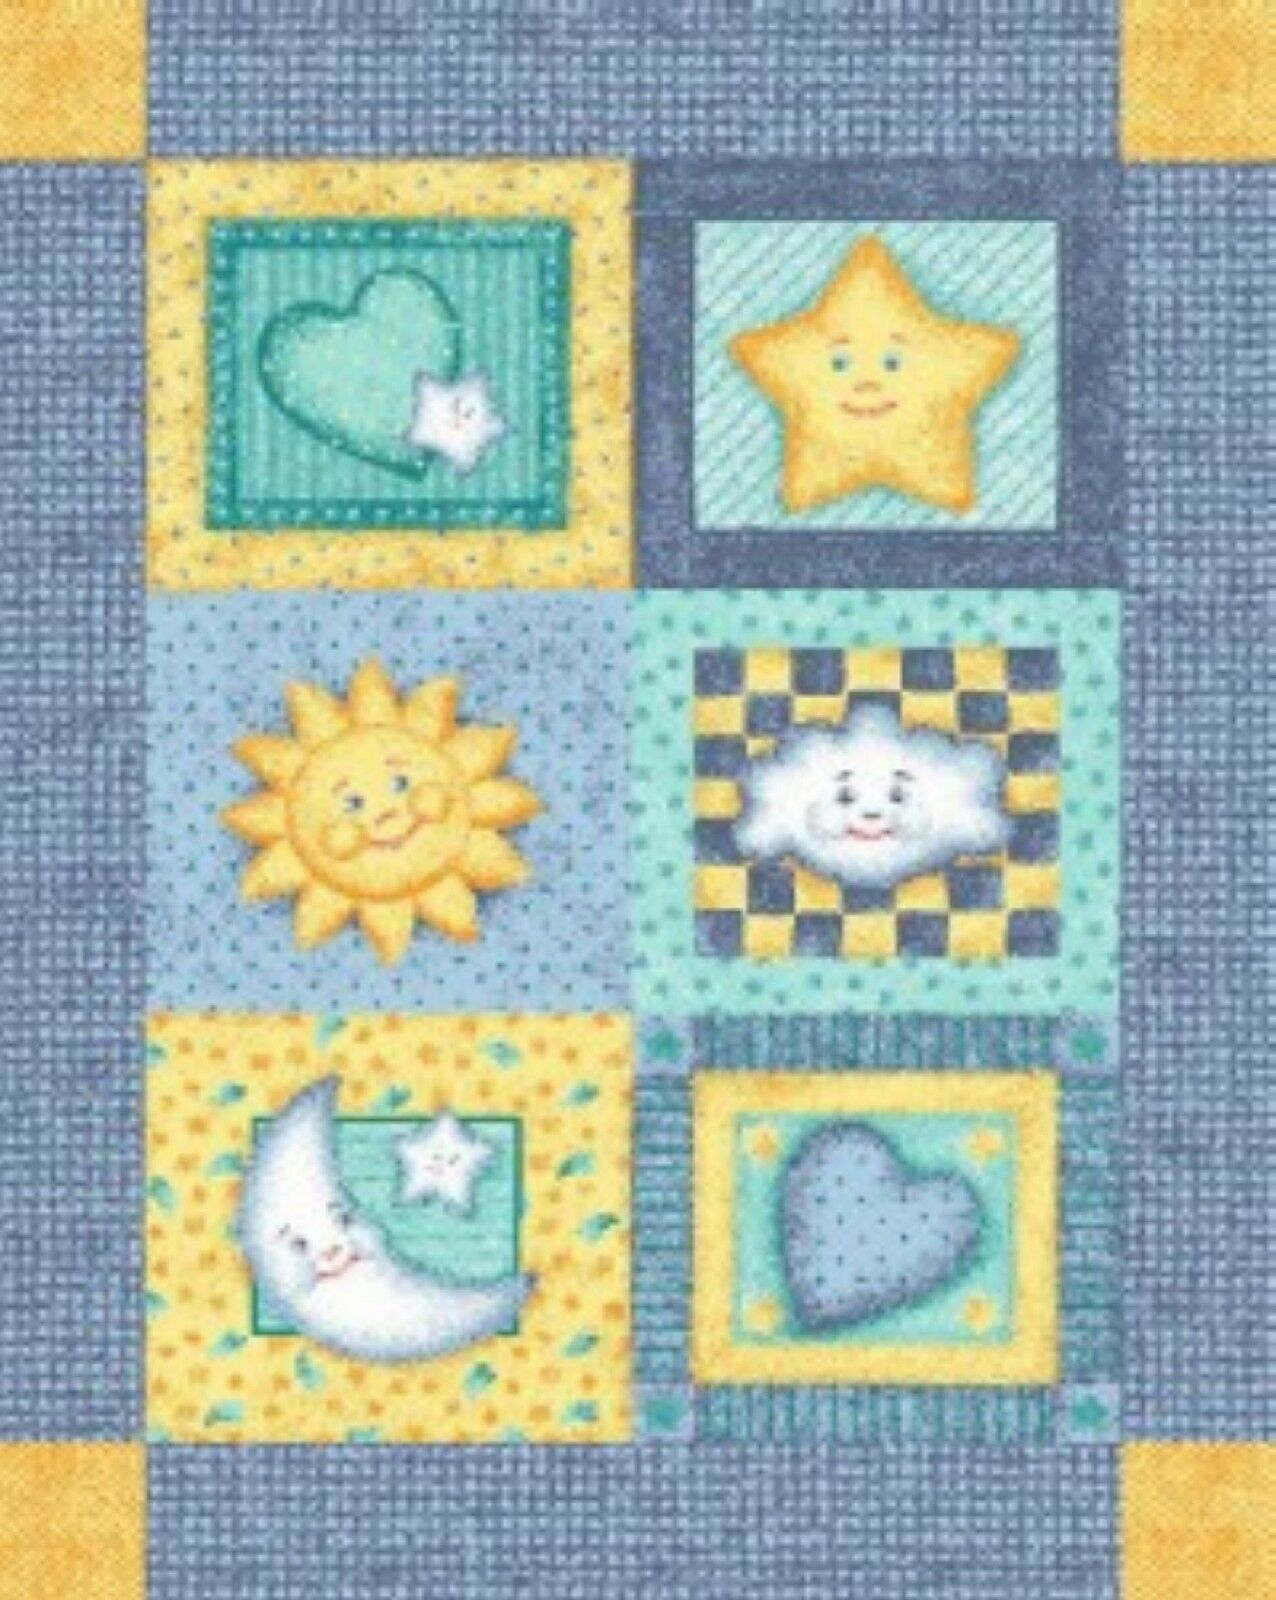 Baby Good Night Moon and Stars Quilt Top Wall Hanging Panel Fabric ...